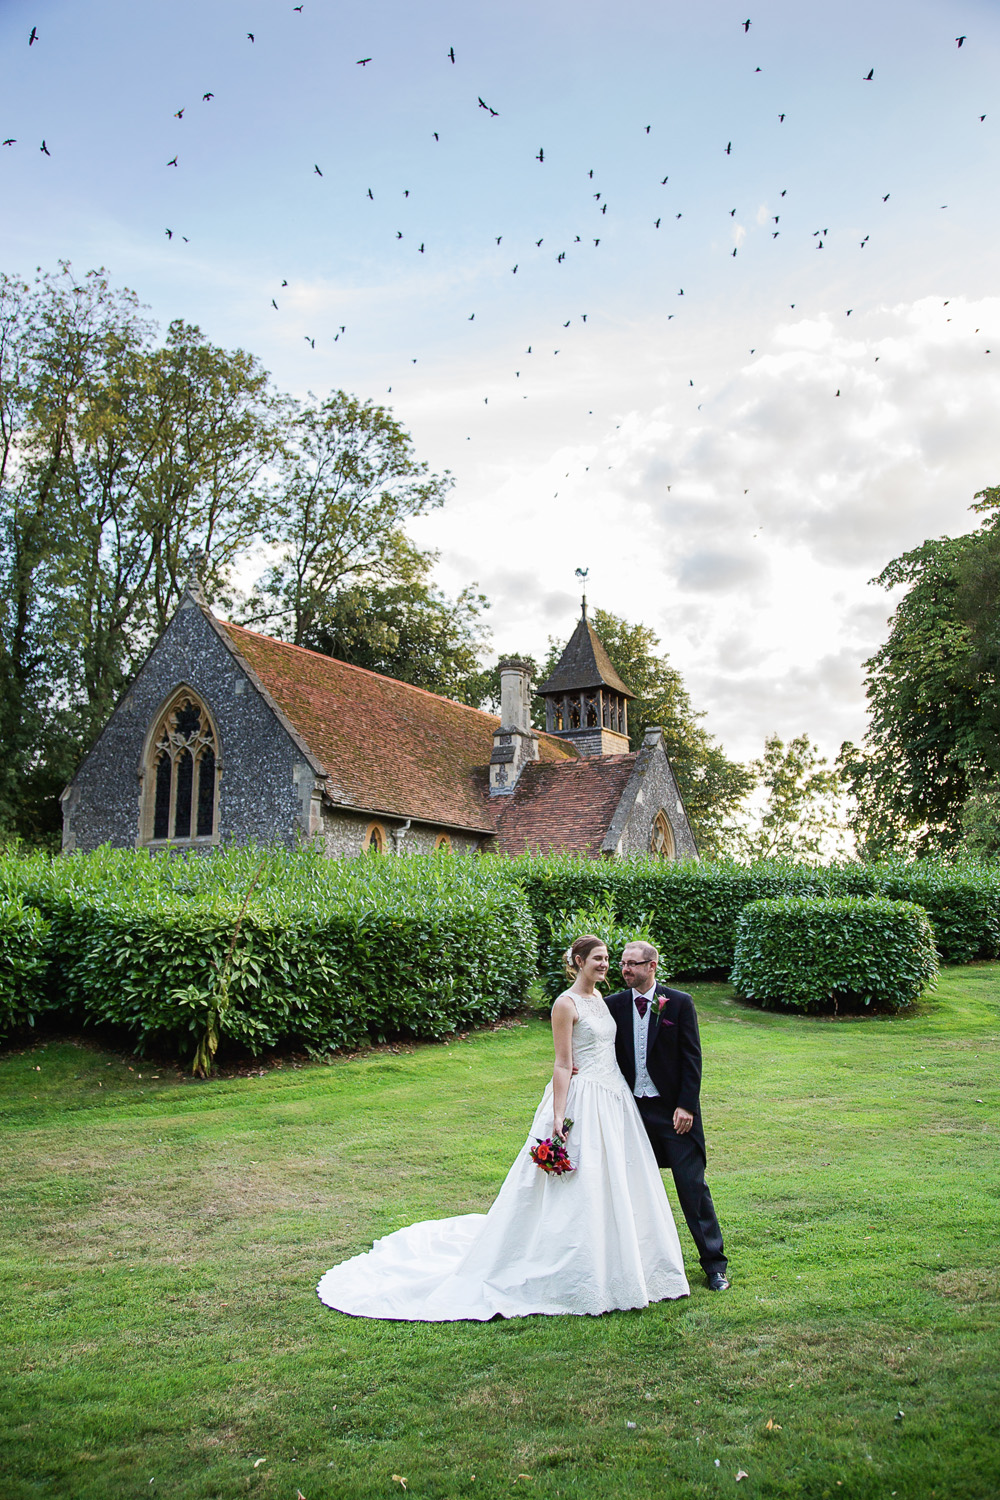 Marlston_House_Wedding_Photographer_Newbury_036.jpg